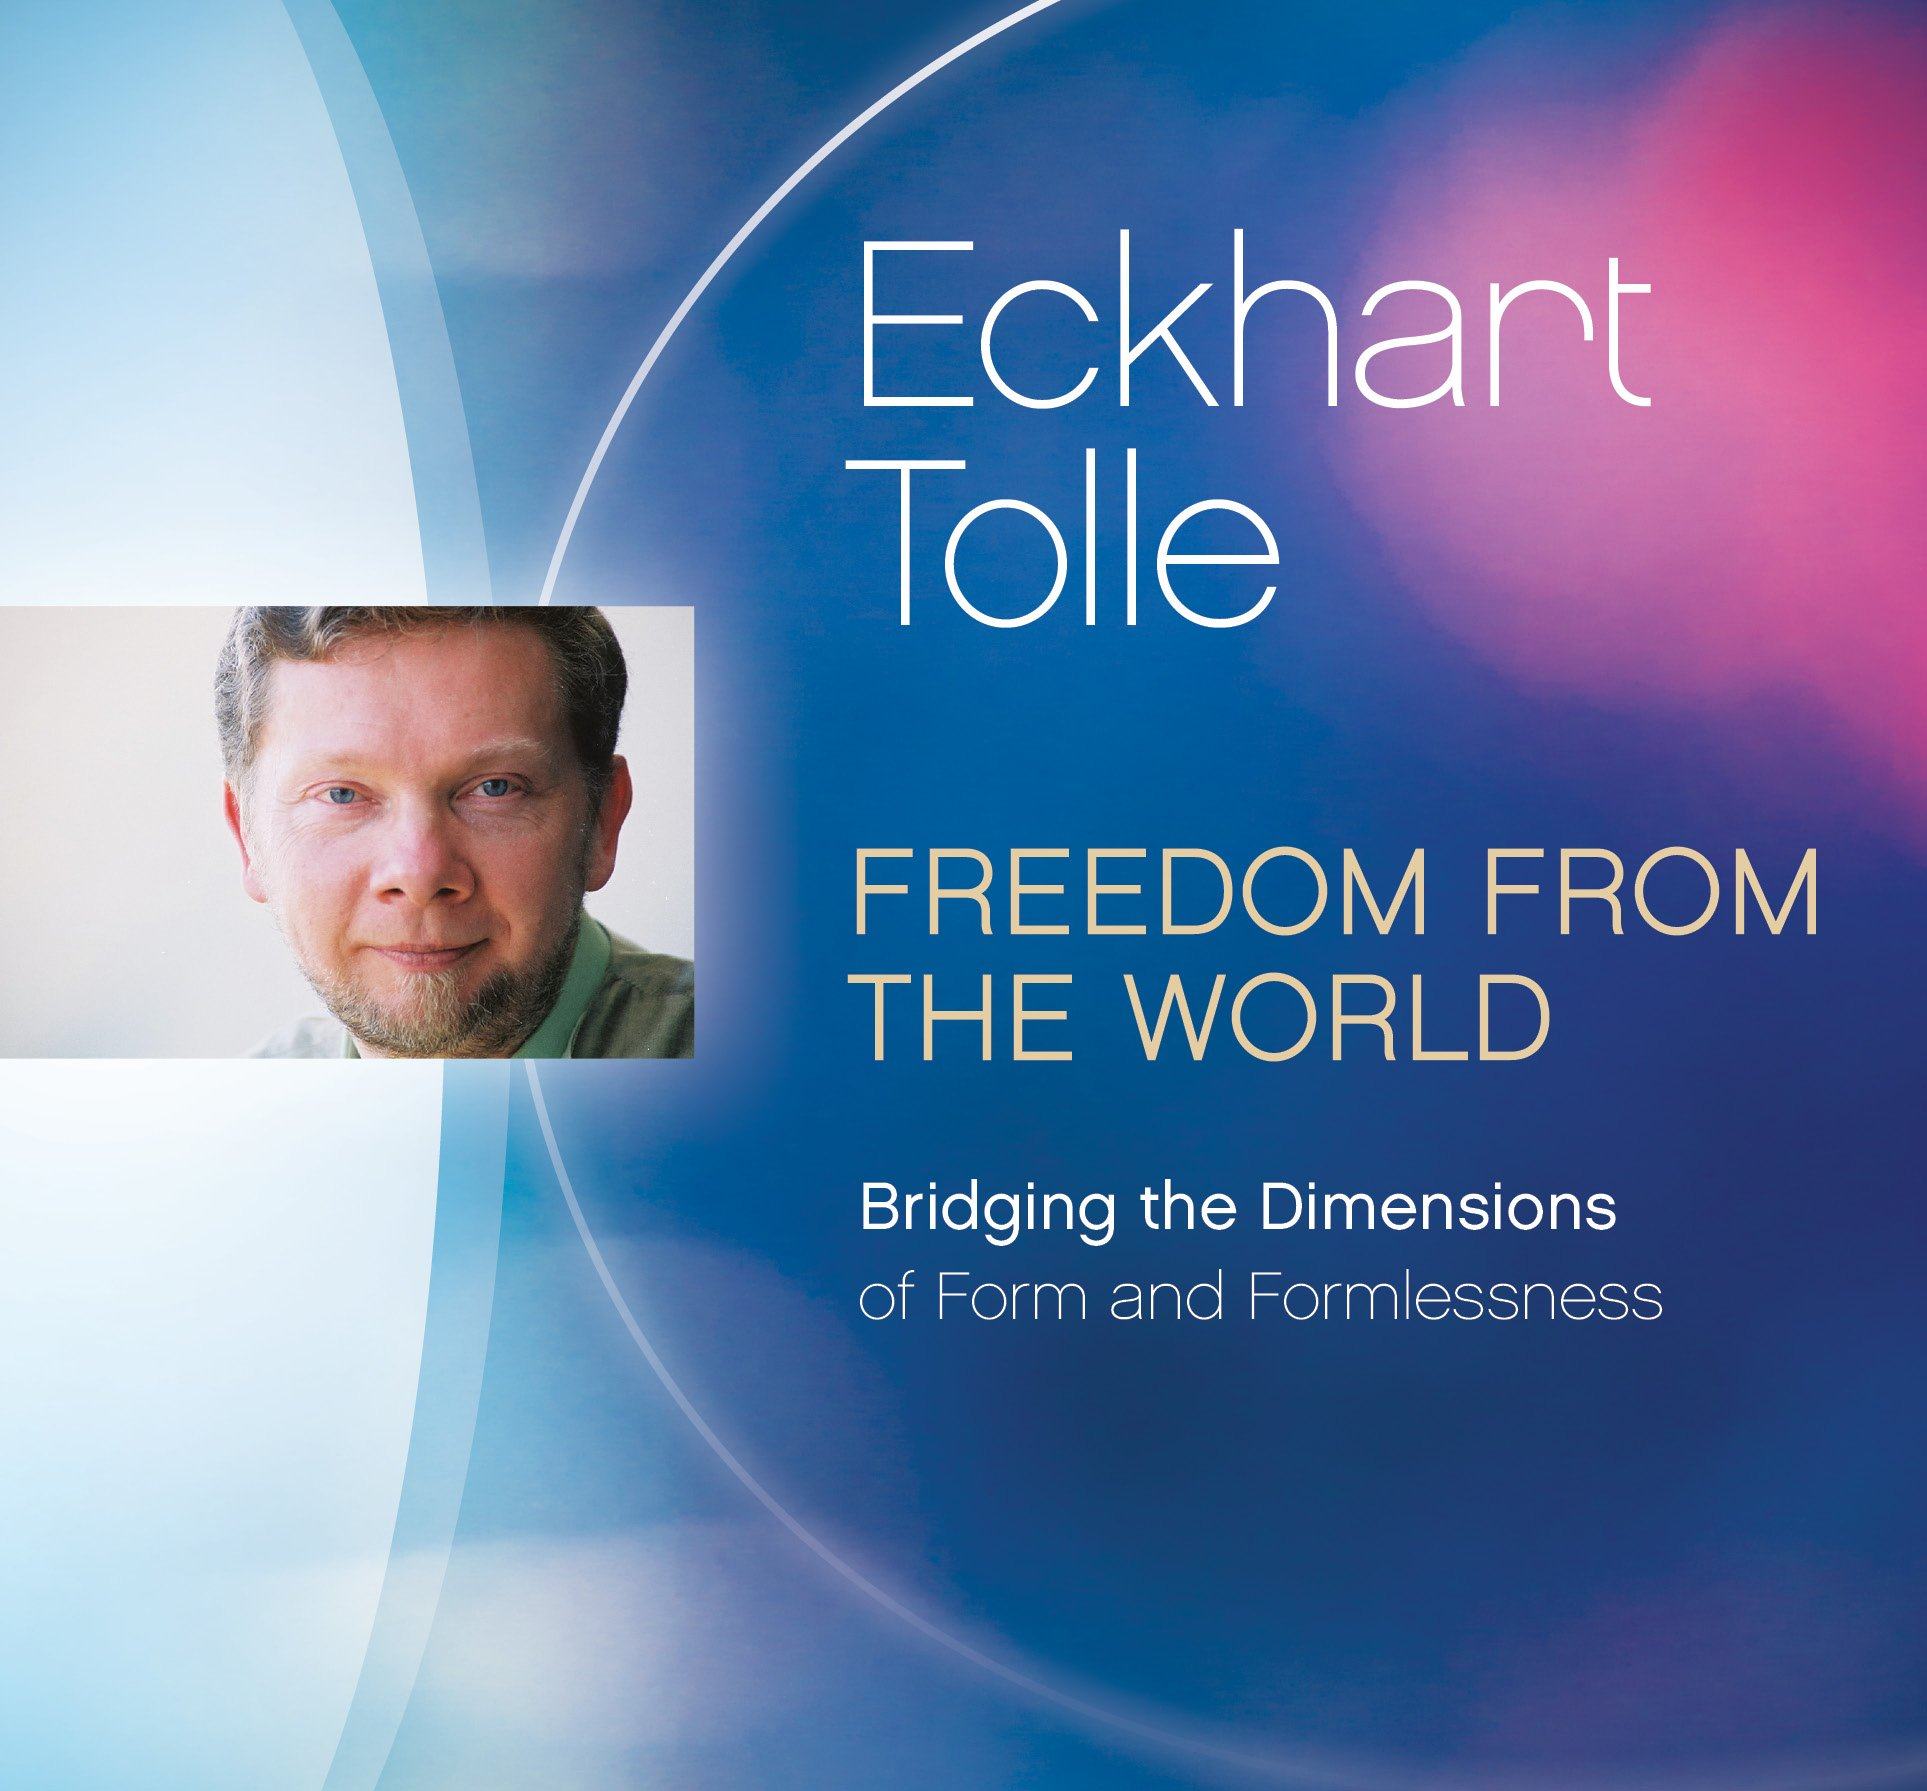 Amazon.com: Freedom from the World: Bridging the Dimensions of Form and  Formlessness (9781894884532): Eckhart Tolle: Books